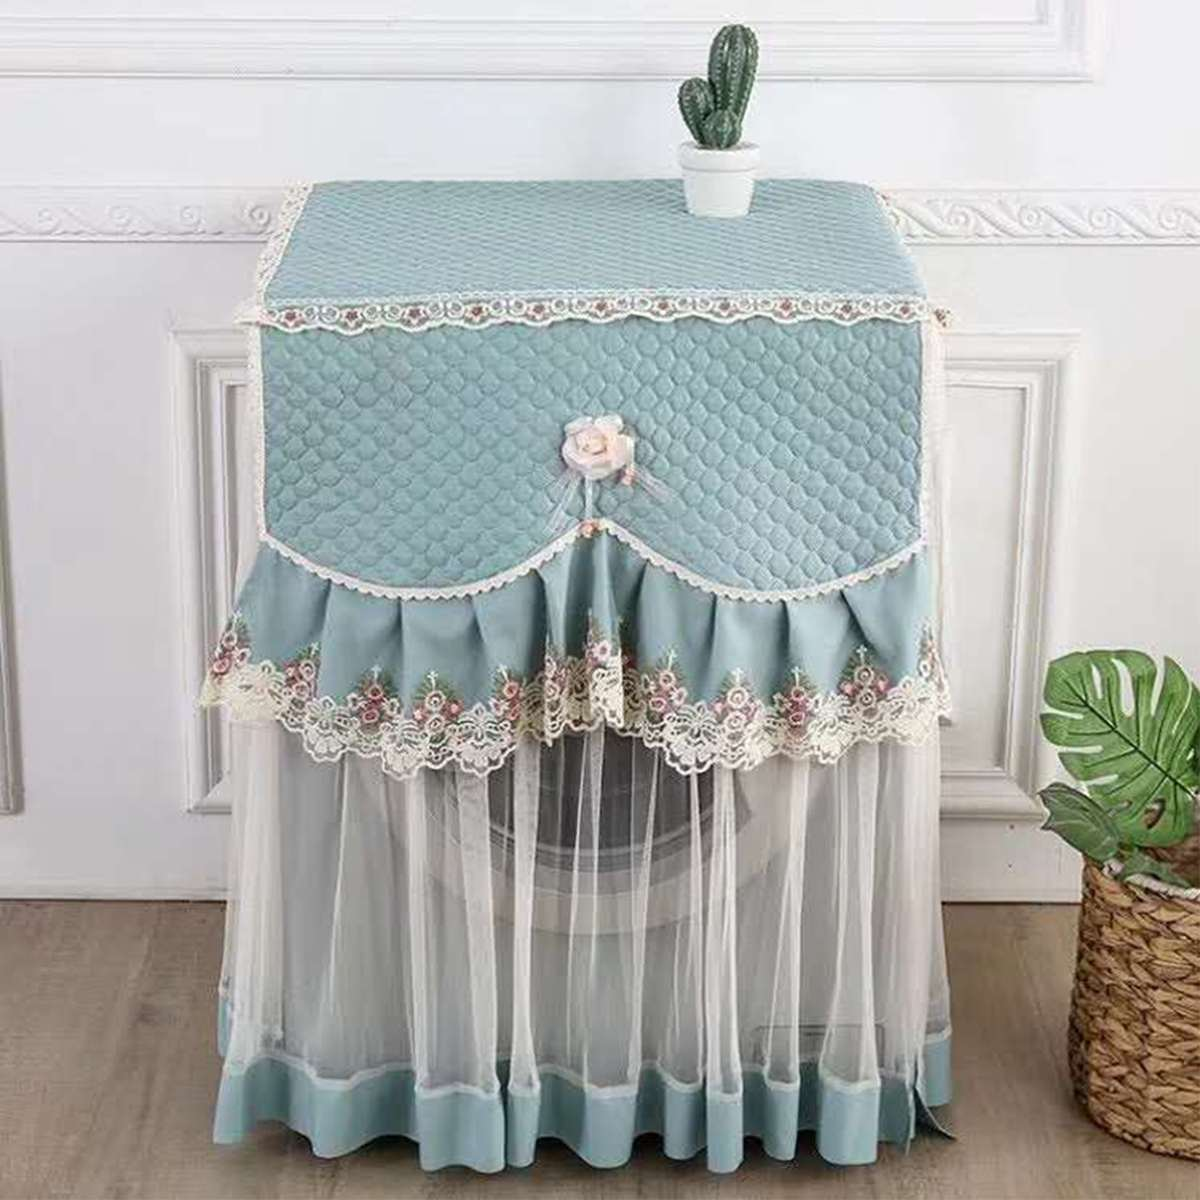 4 Colors Romantic Lace Washing Machine Cover Dustproof Embroidery Floral Home Decor Protector Washing Machine Covers 60X60X83cm